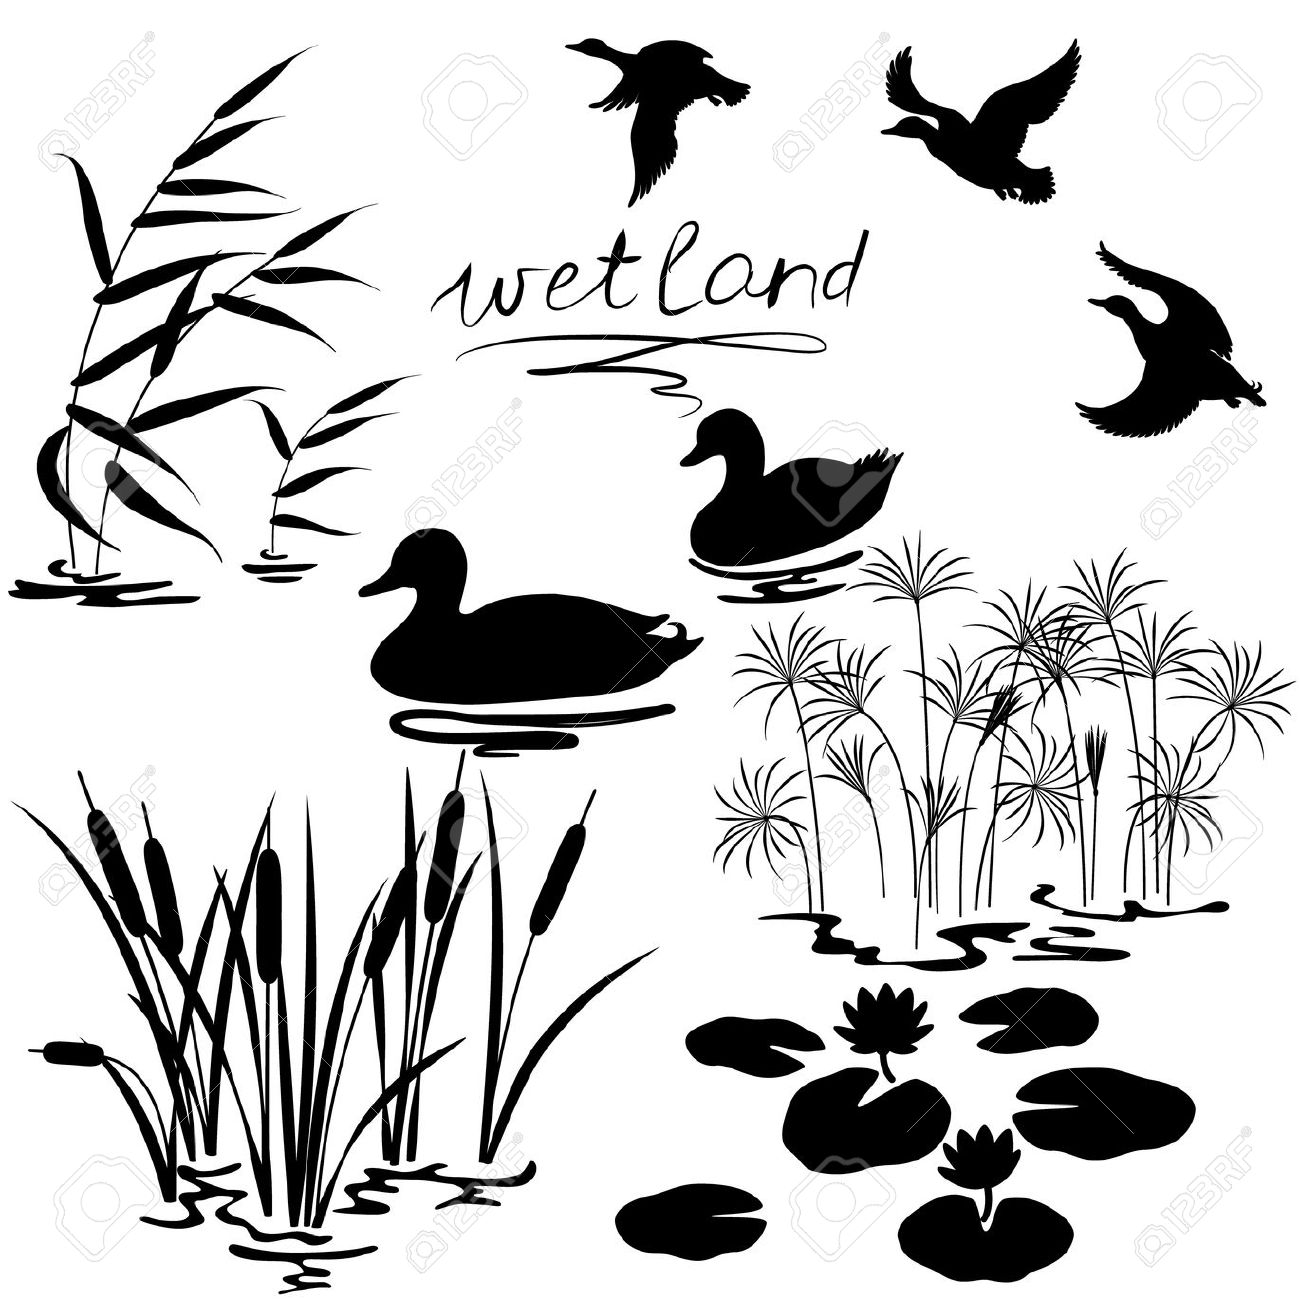 Wetland Cliparts